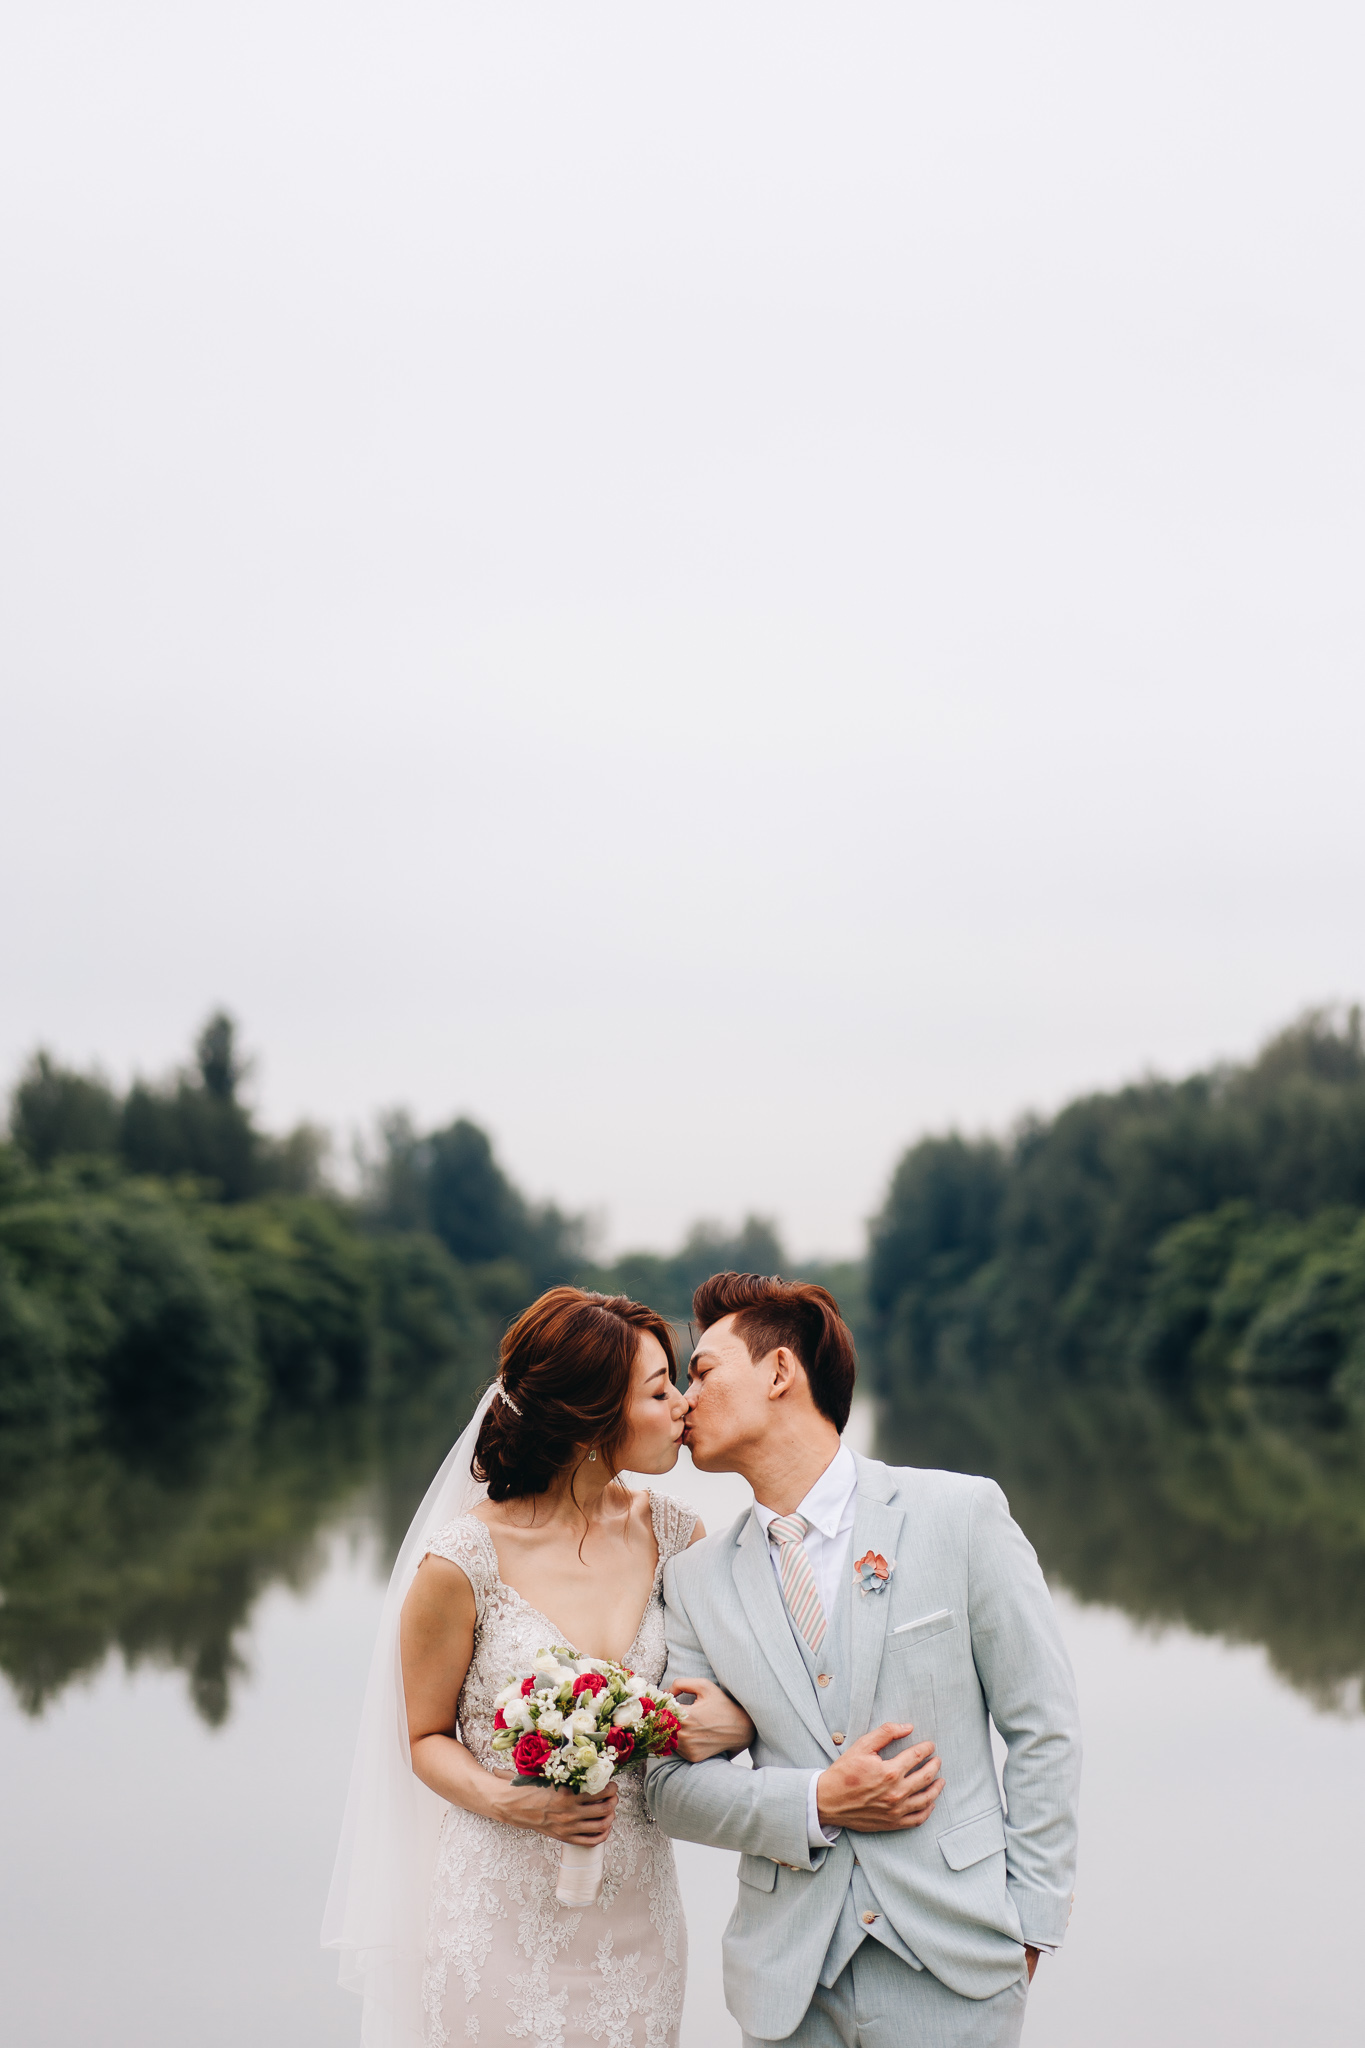 Cindy & Kevin Wedding Day Highlights (resized for sharing) - 112.jpg